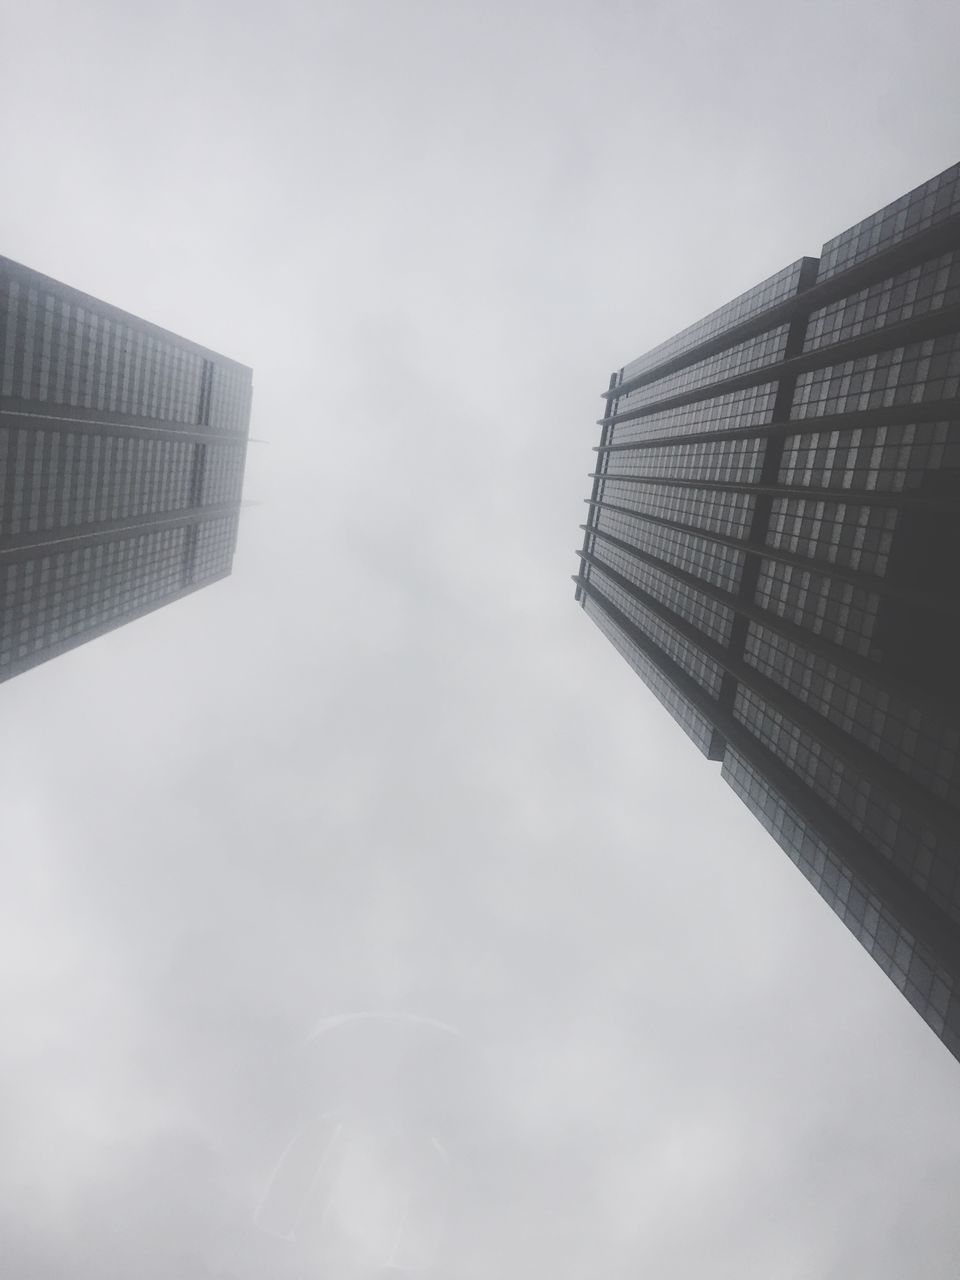 architecture, building exterior, built structure, skyscraper, modern, low angle view, city, sky, tower, outdoors, day, tall, no people, growth, twin